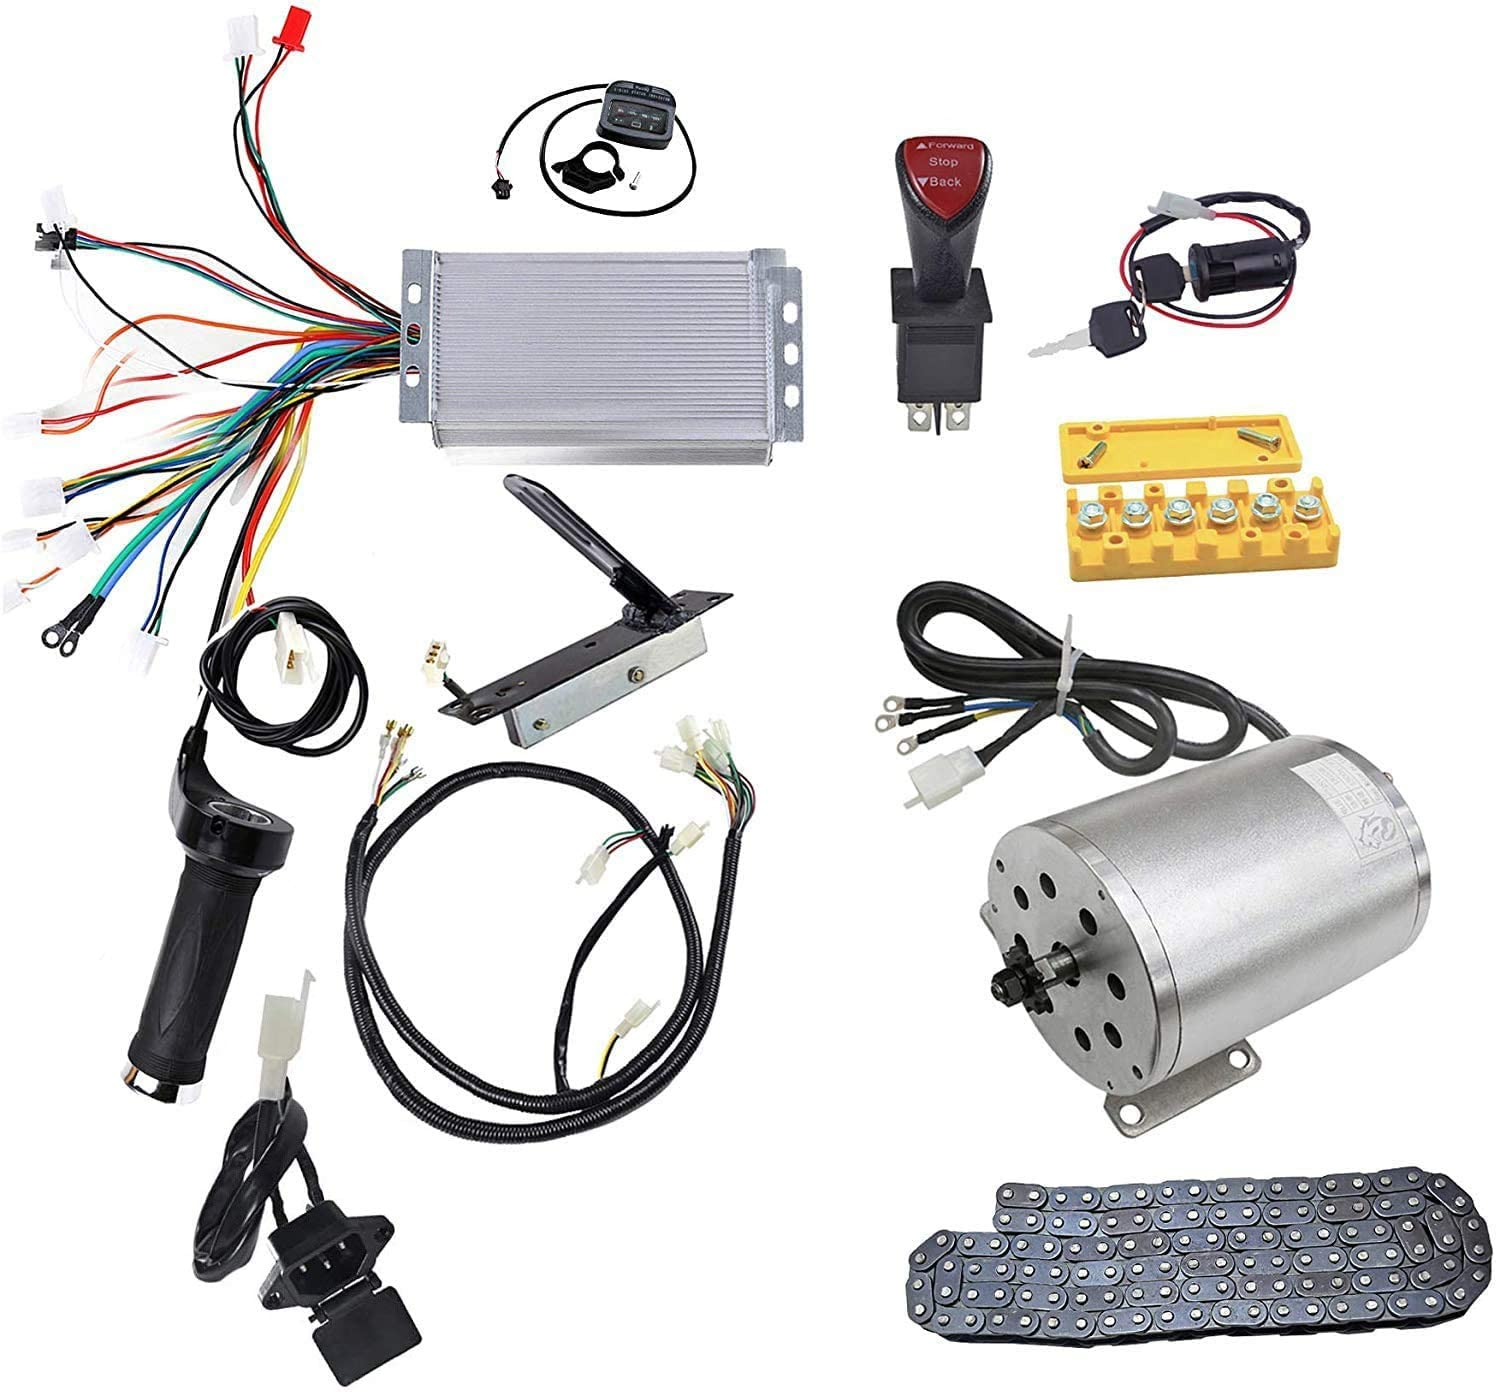 Wphmoto 48v 1800w Brushless Electric Motor Controller Throttle Grip Pedal Wiring Harness Charger Plug Chain Ignition Key Kit For Go Kart Scooter